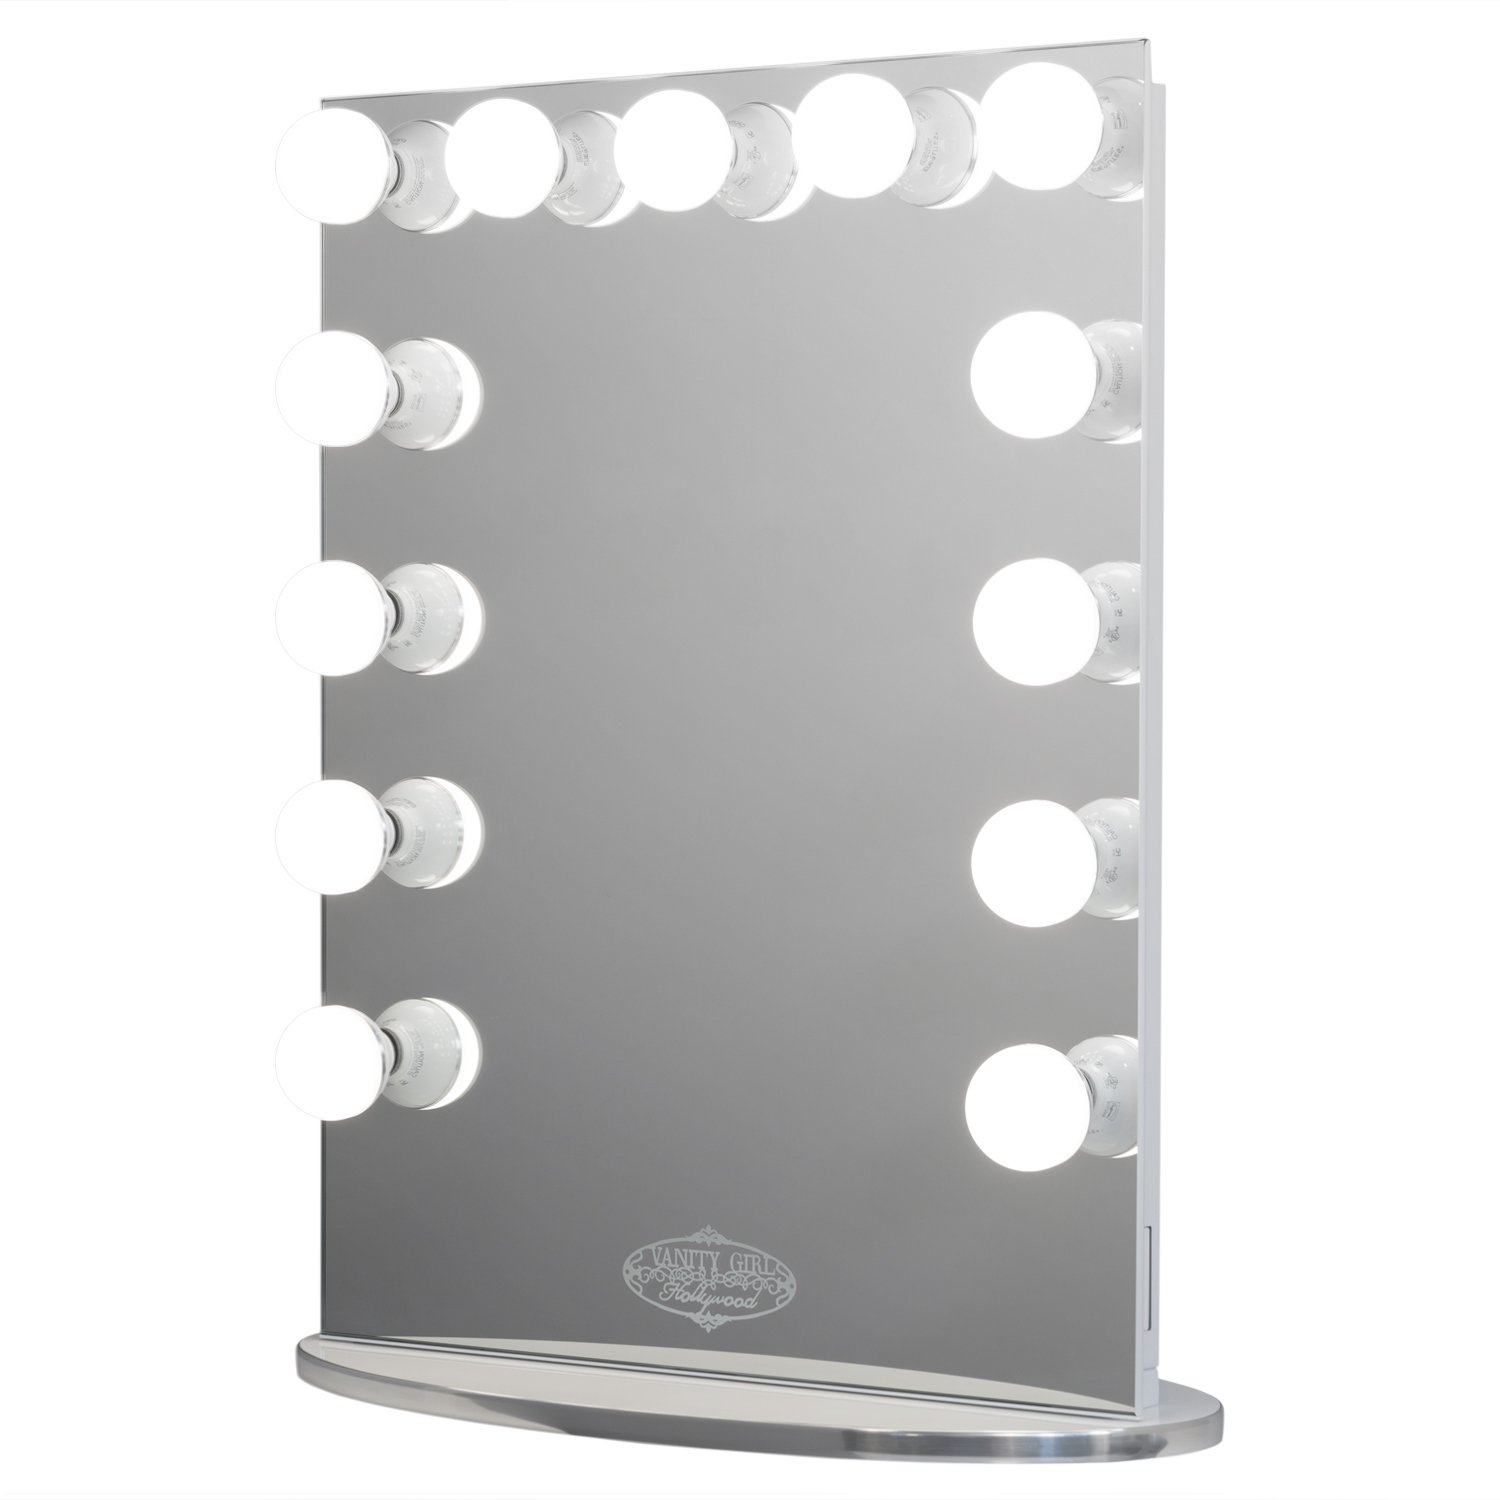 Vanity Girl Hollywood Infinity Mirror. Lighted (13 Bulb) Vanity Mirror with Dimmer